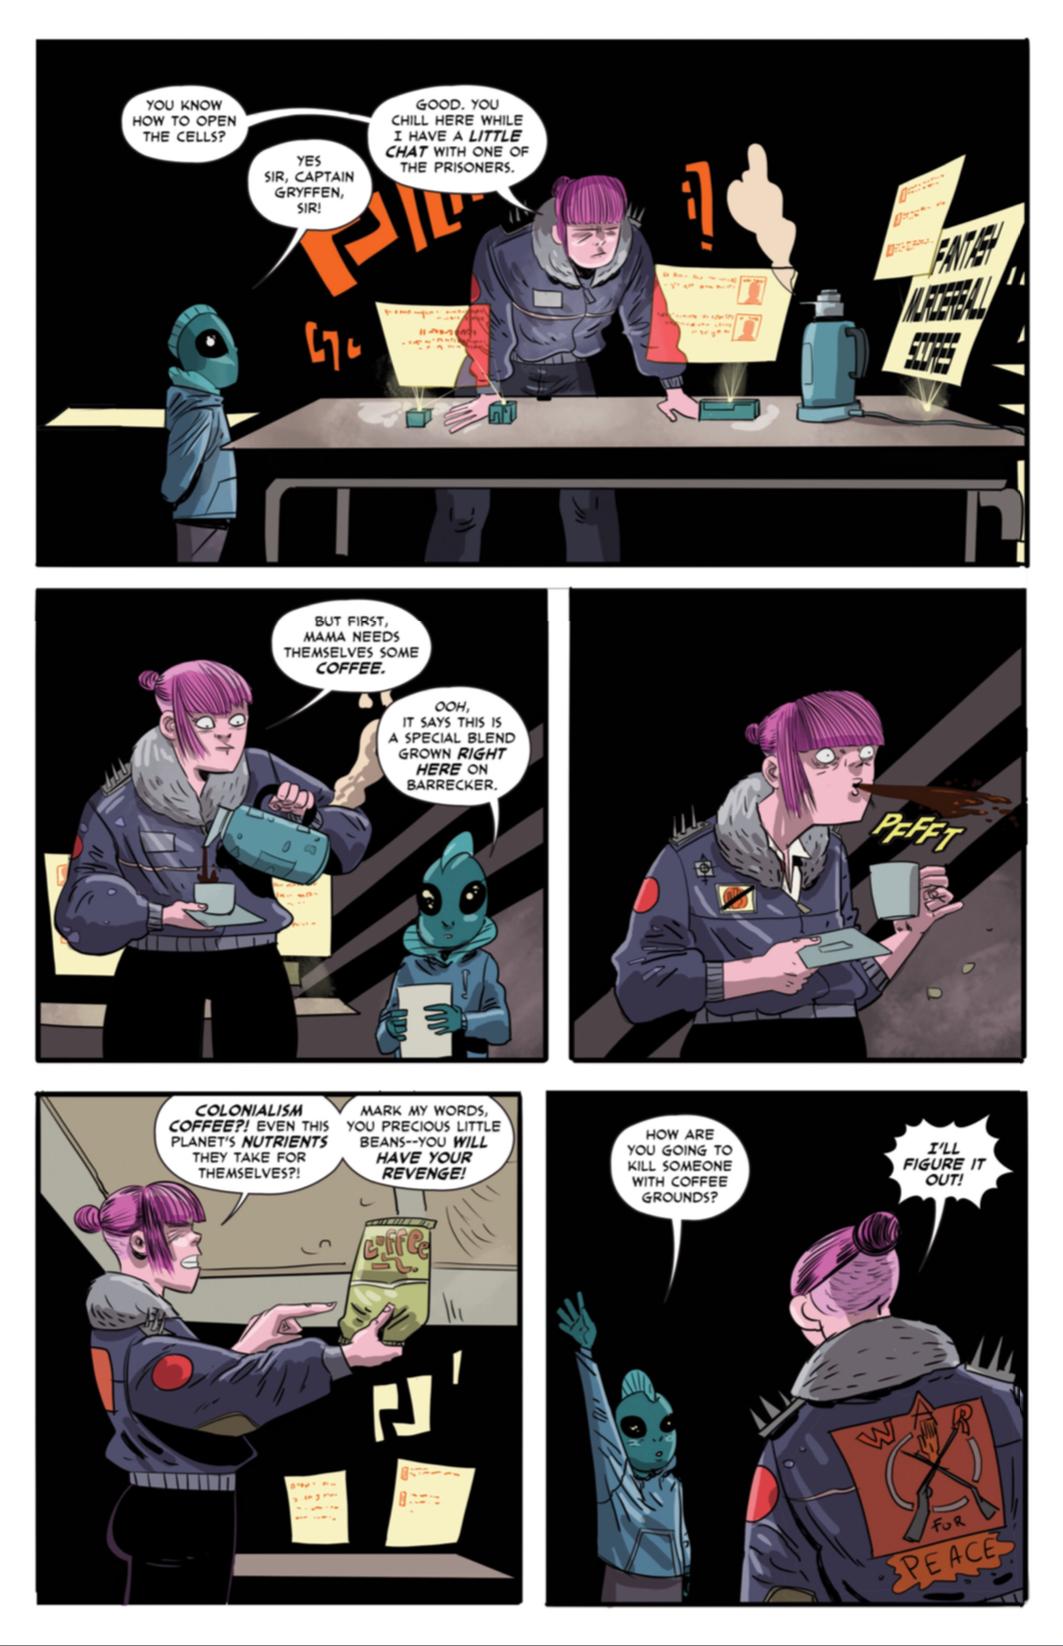 Gryffen: Galaxy's Most Wanted #8; page three: Gryffen gets a taste of colonialist coffee.